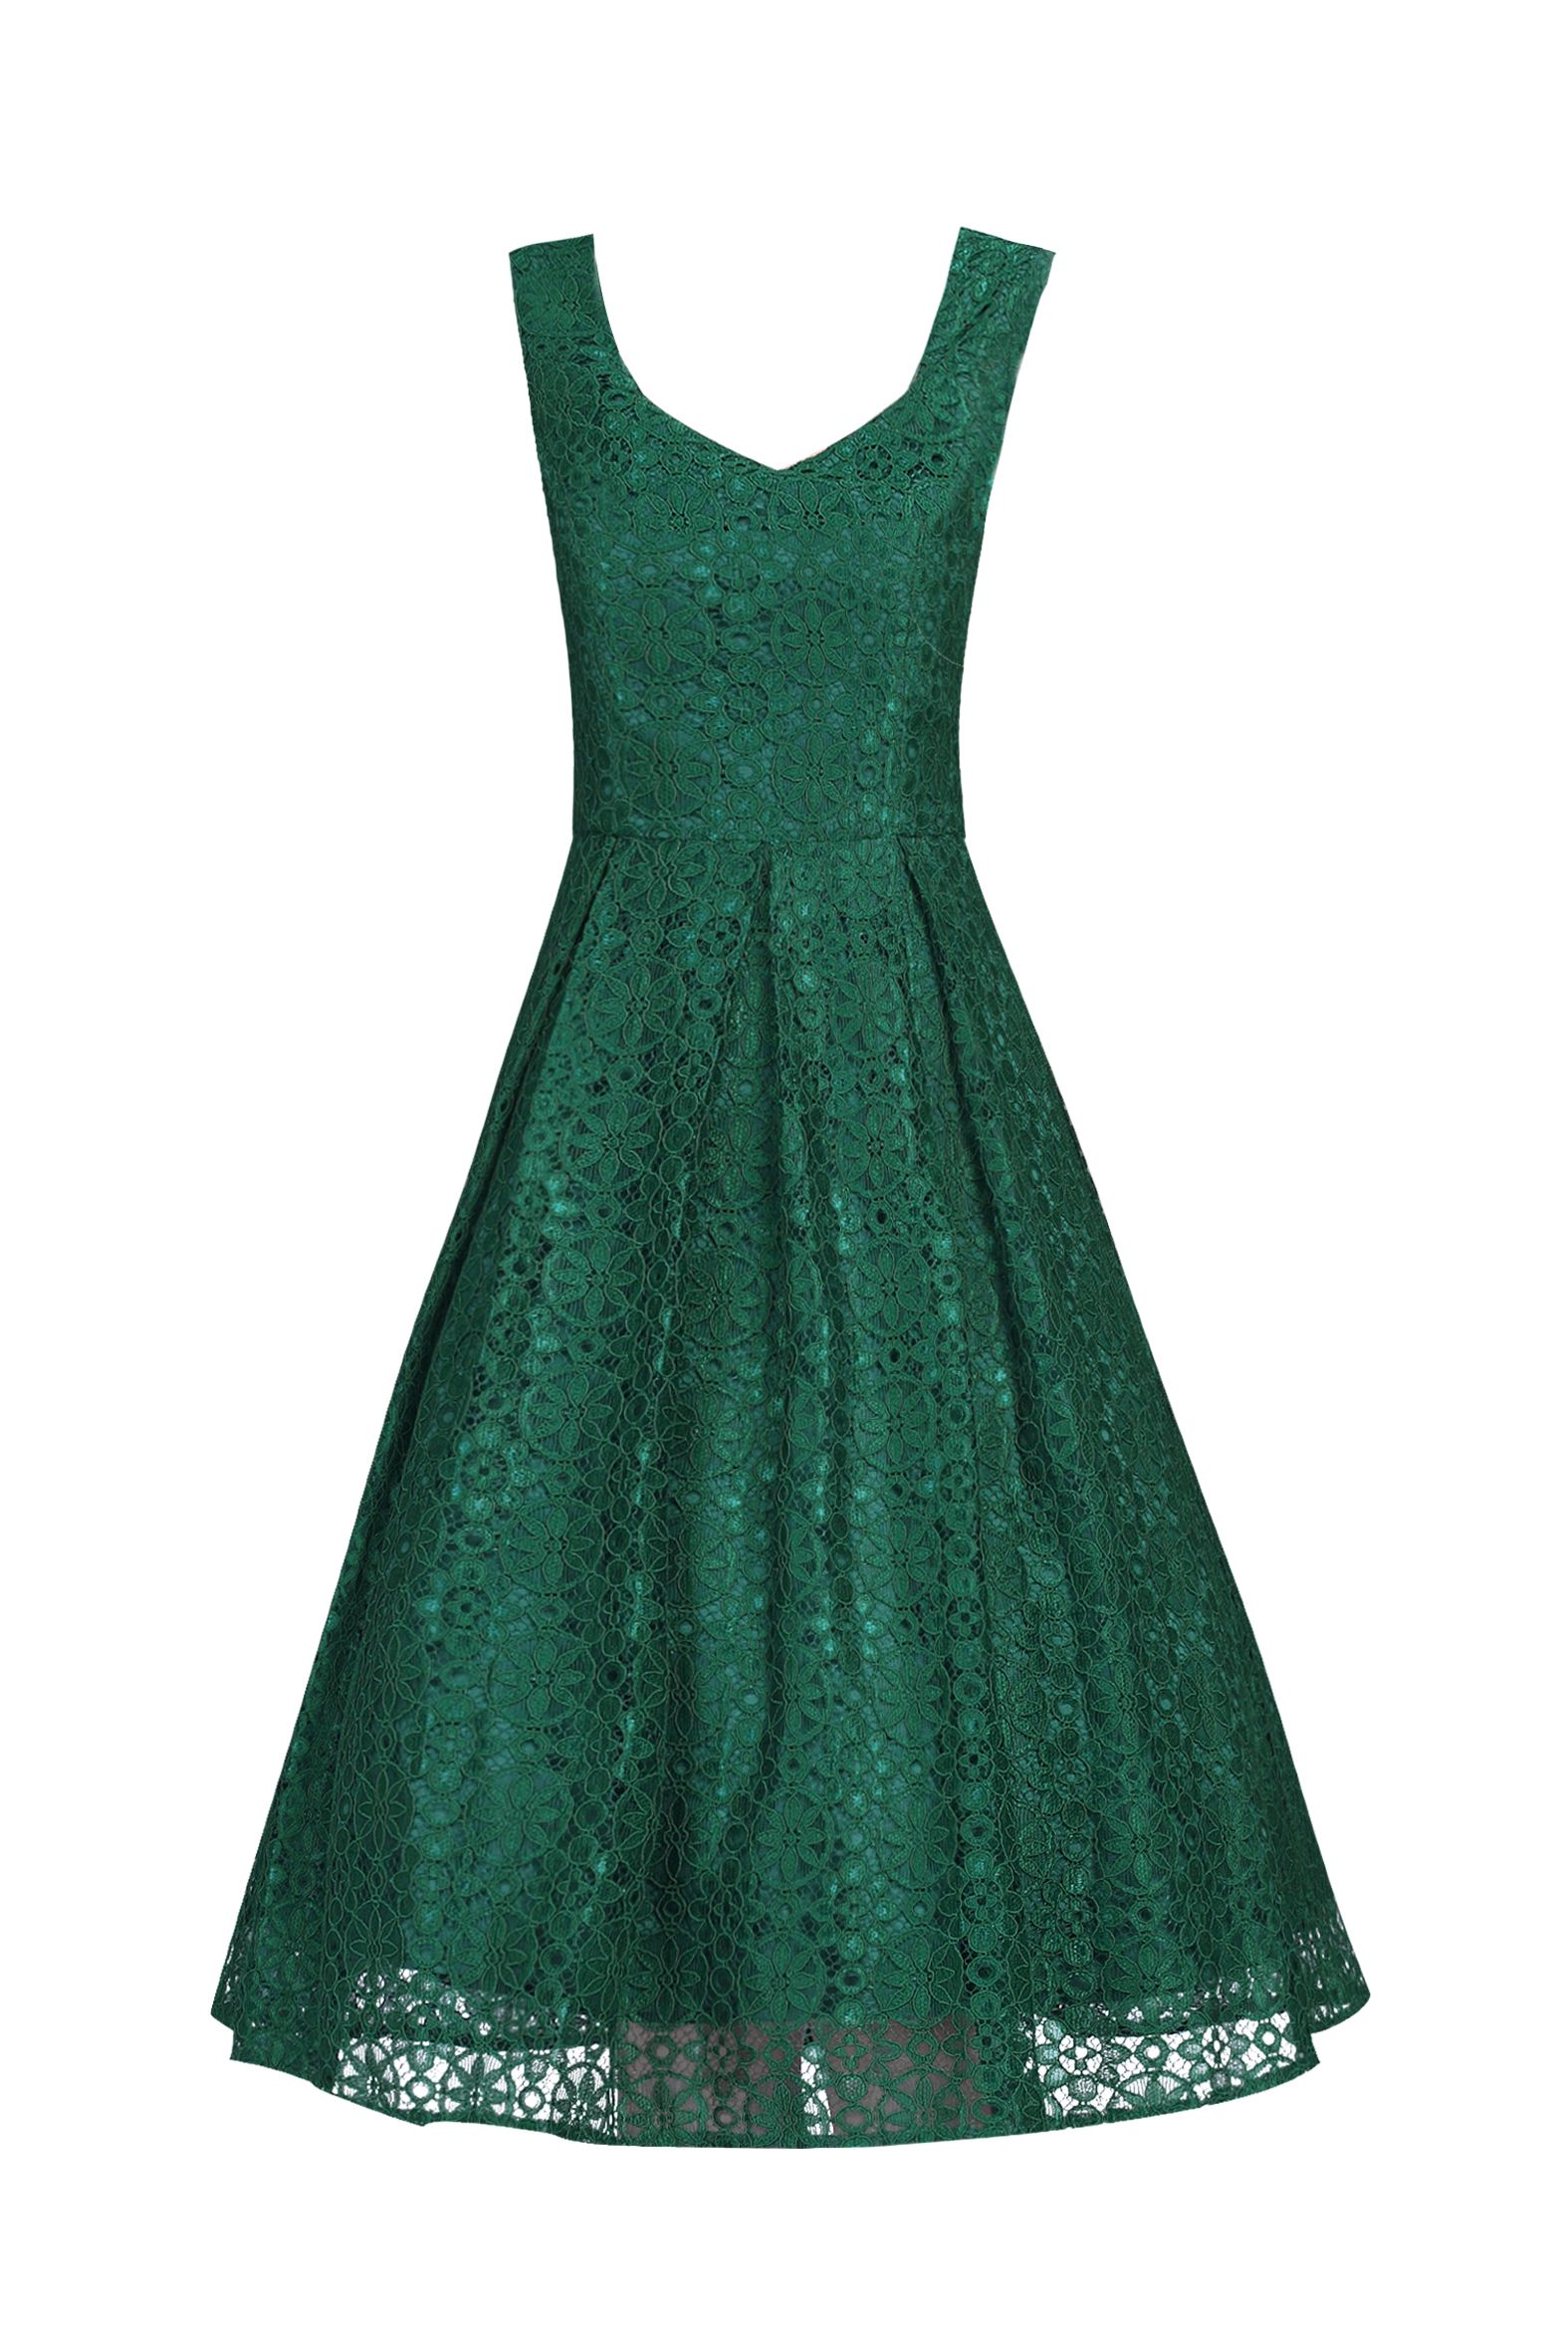 Jolie Moi Sweetheart Pleated Lace Dress, Dark Green